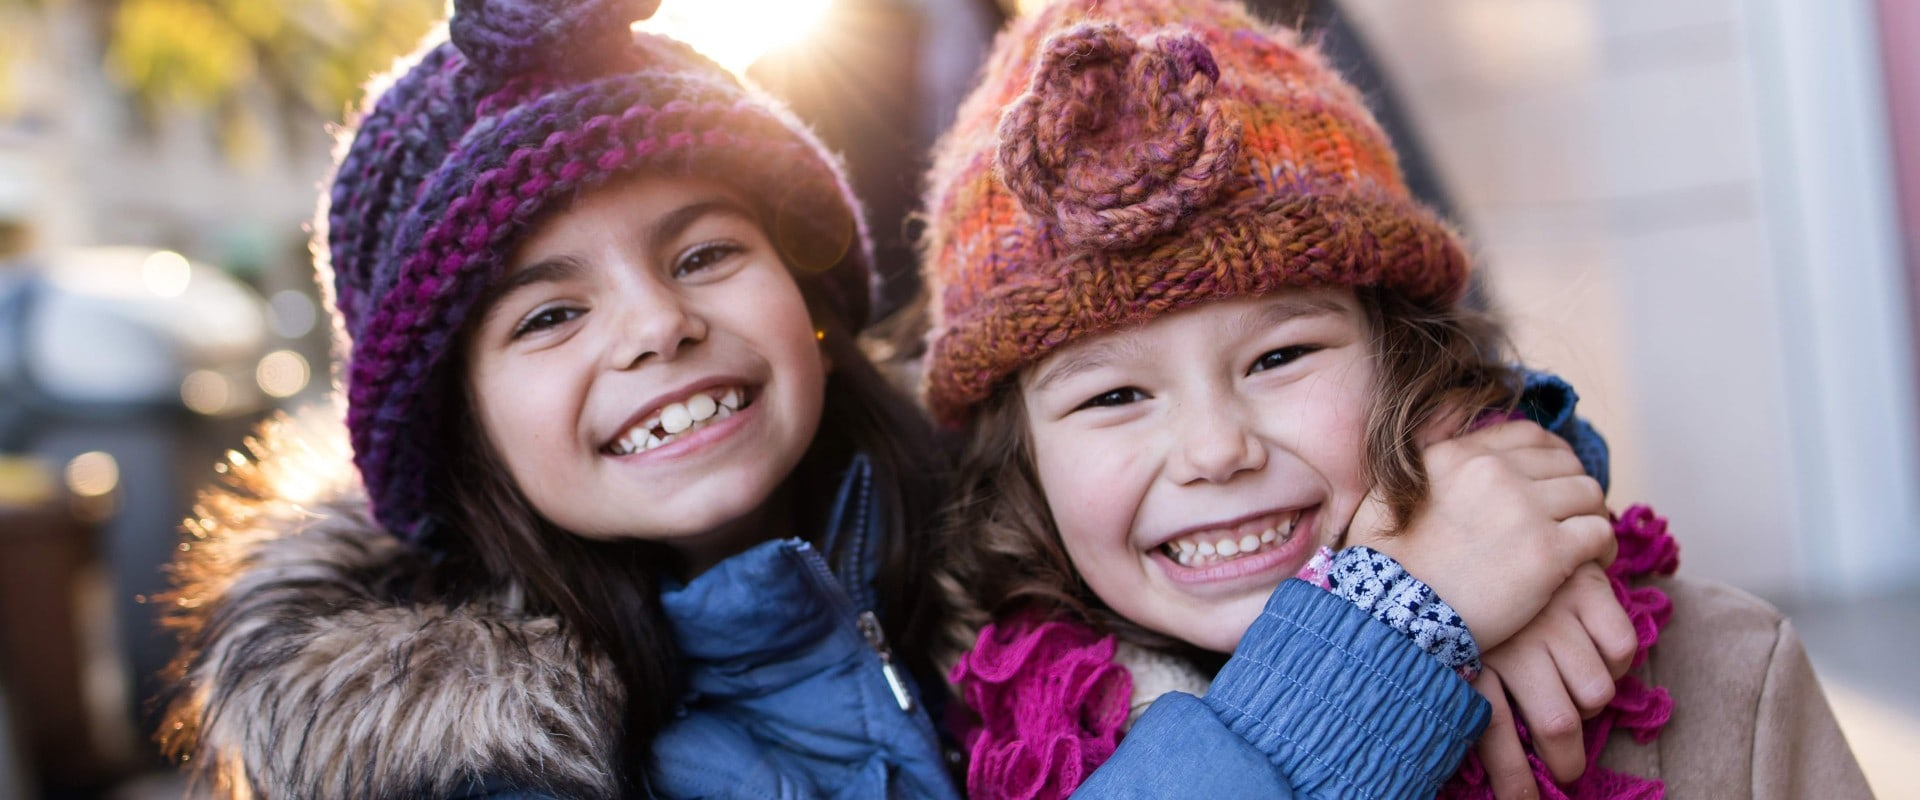 Sisters hugging and smiling at camera in winter on city street